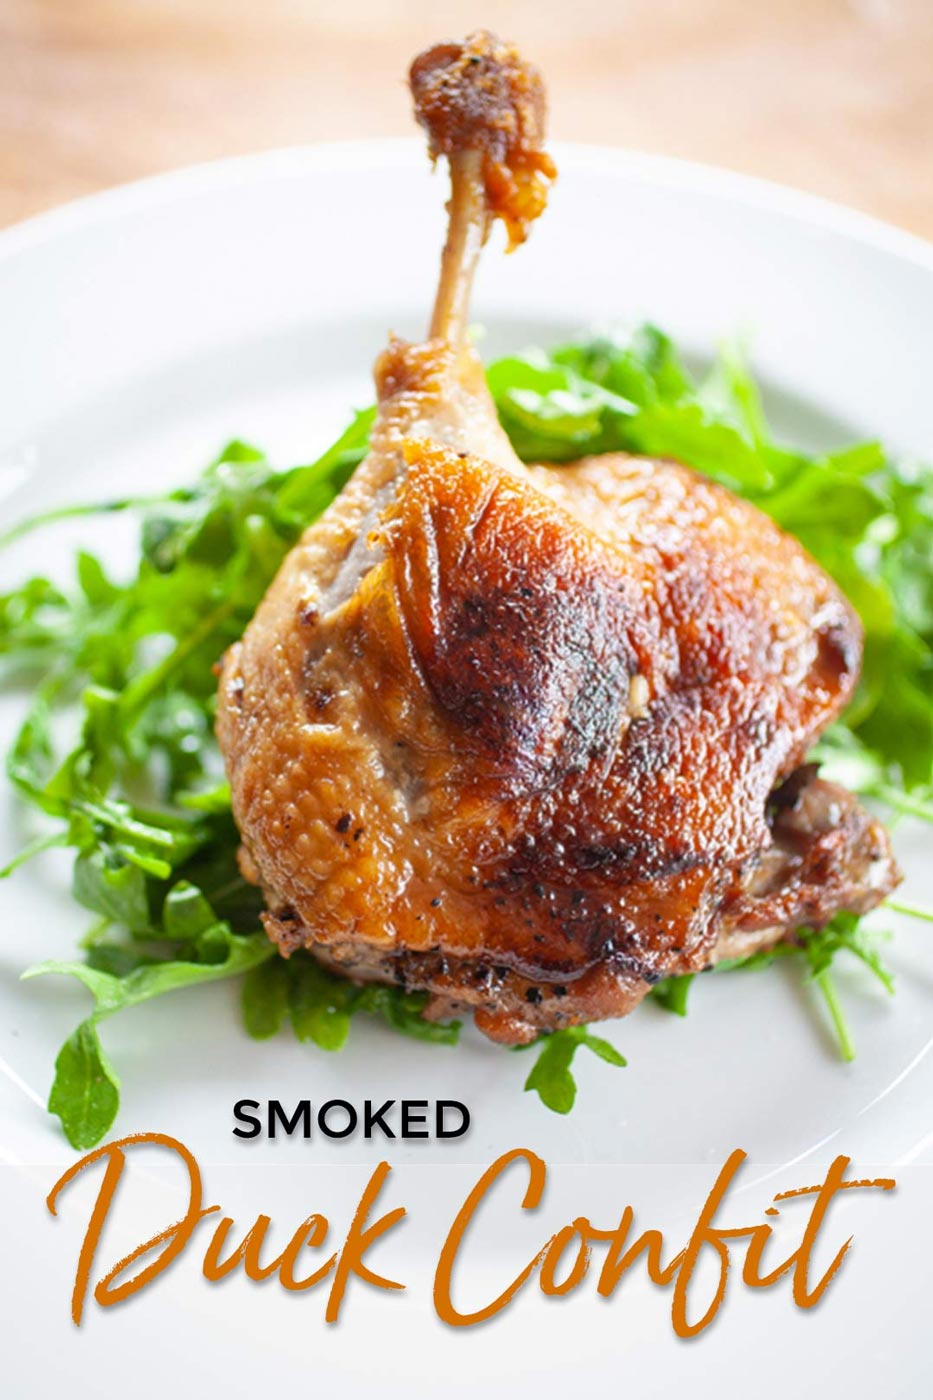 Recipe for Smoked Duck Confit